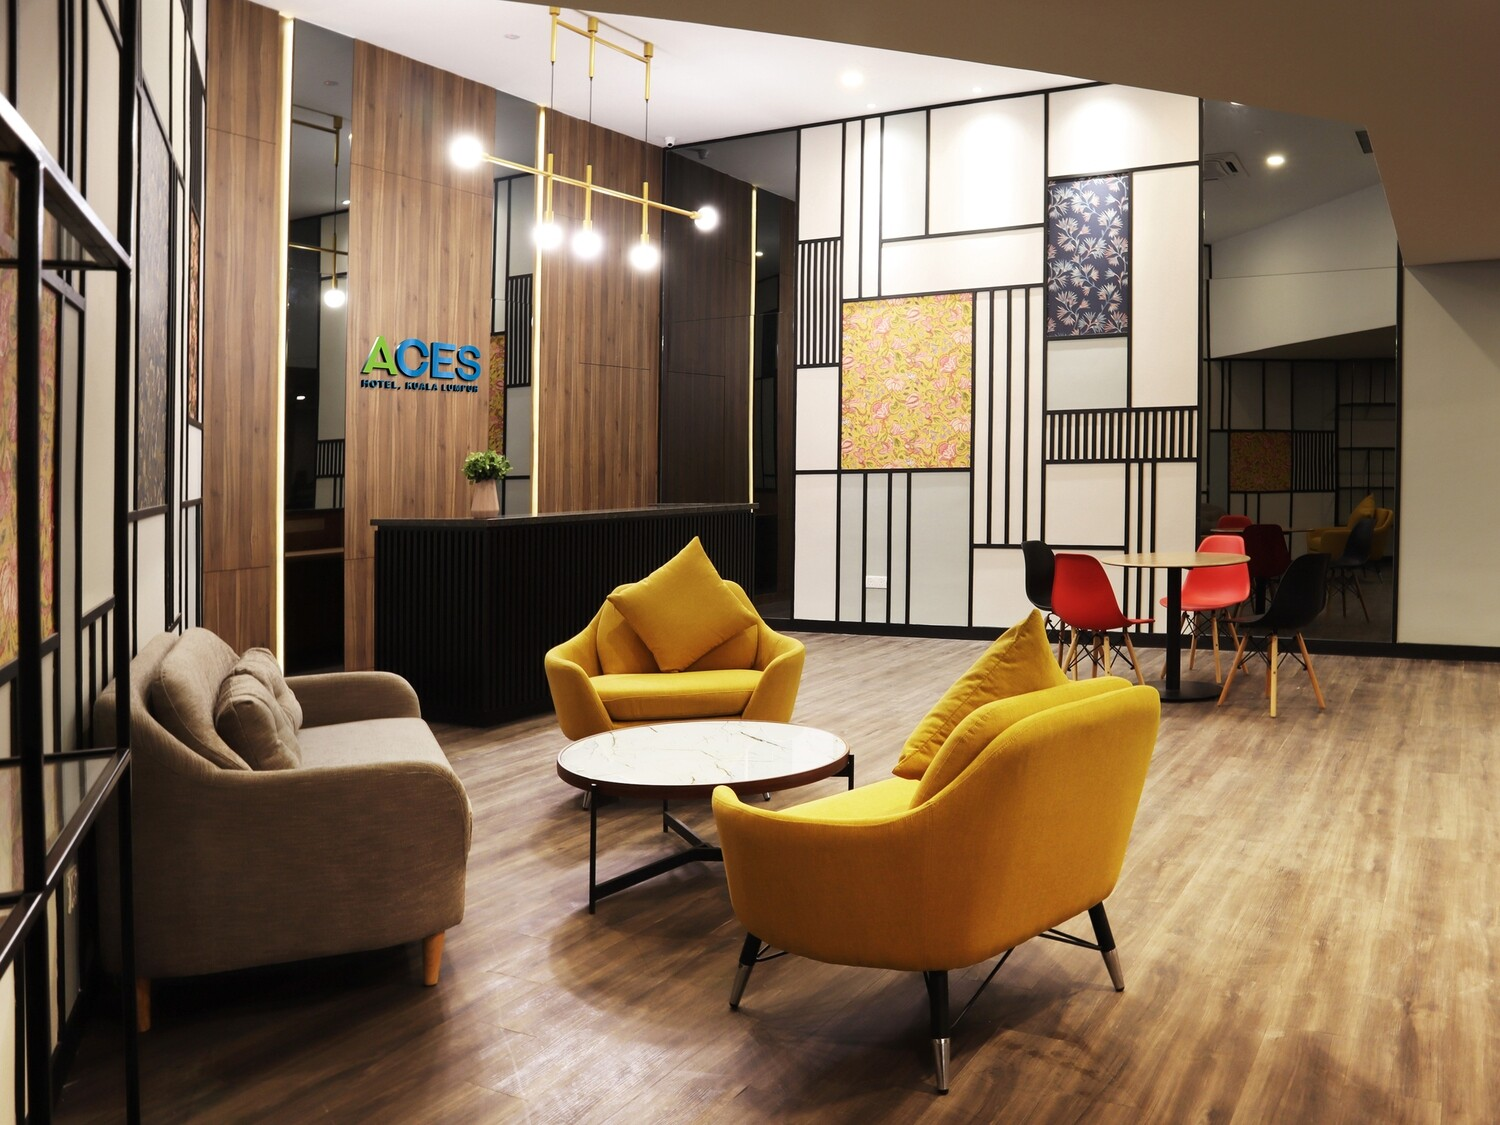 10D9N Self-Isolation Package @ Aces Hotel Kuala Lumpur